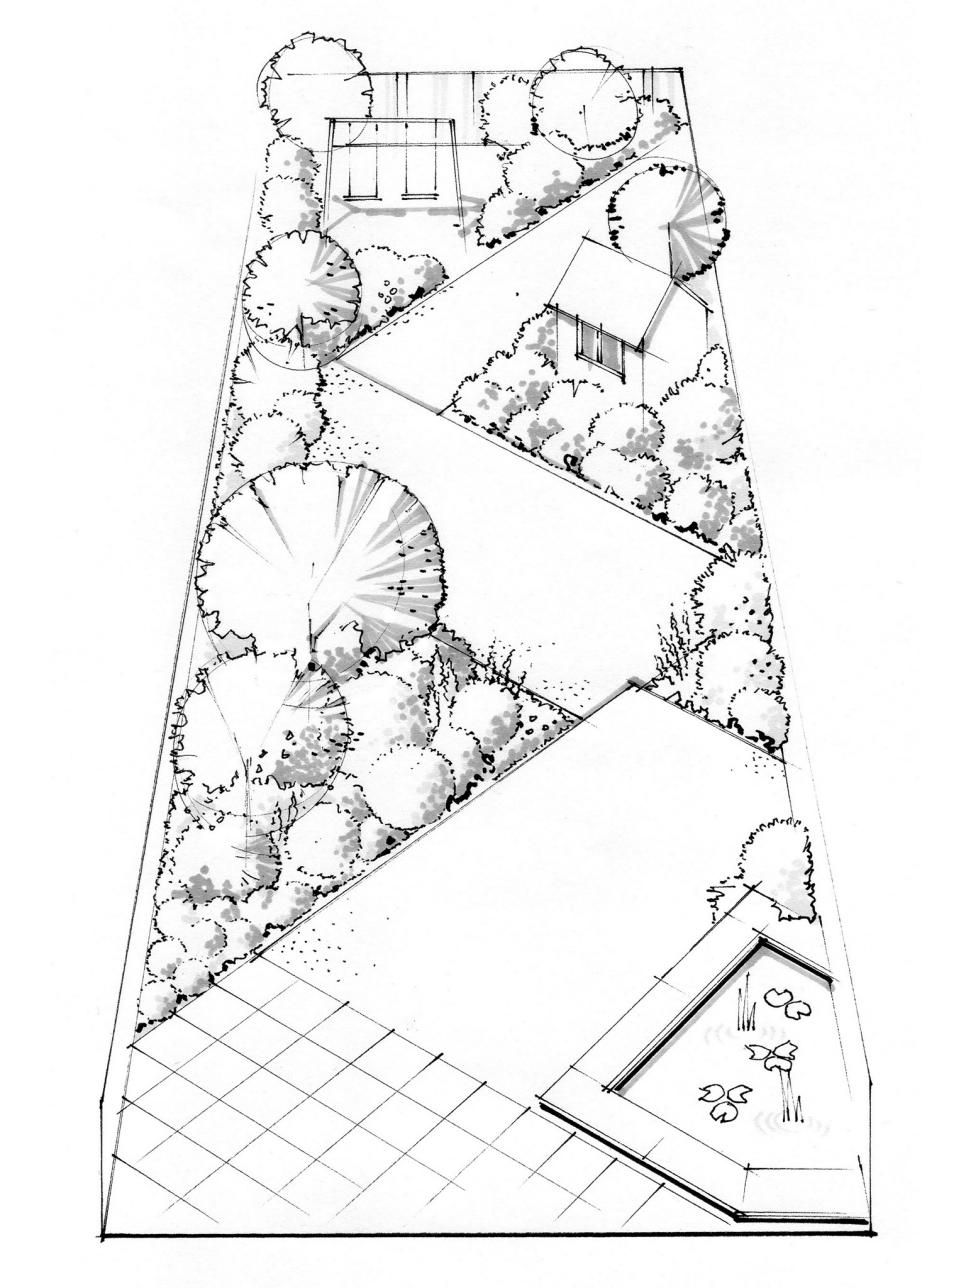 Garden Landscaping Design Ideas | Garden design plans ... on drawing kitchen, drawing furniture plans, drawing addition plans, drawing tree house plans, drawing patio plans, driveway drawing plans, drawing easel plans, drawing bbq plans, drawing electrical plans, drawing small house plans, basement drawing plans, drawing construction plans, drawing desk plans, drawing balcony plans, civil engineering drawing plans, drawing deck plans, drawing city plans, drawing restaurant plans, drawing house floor plans, drawing horse plans,